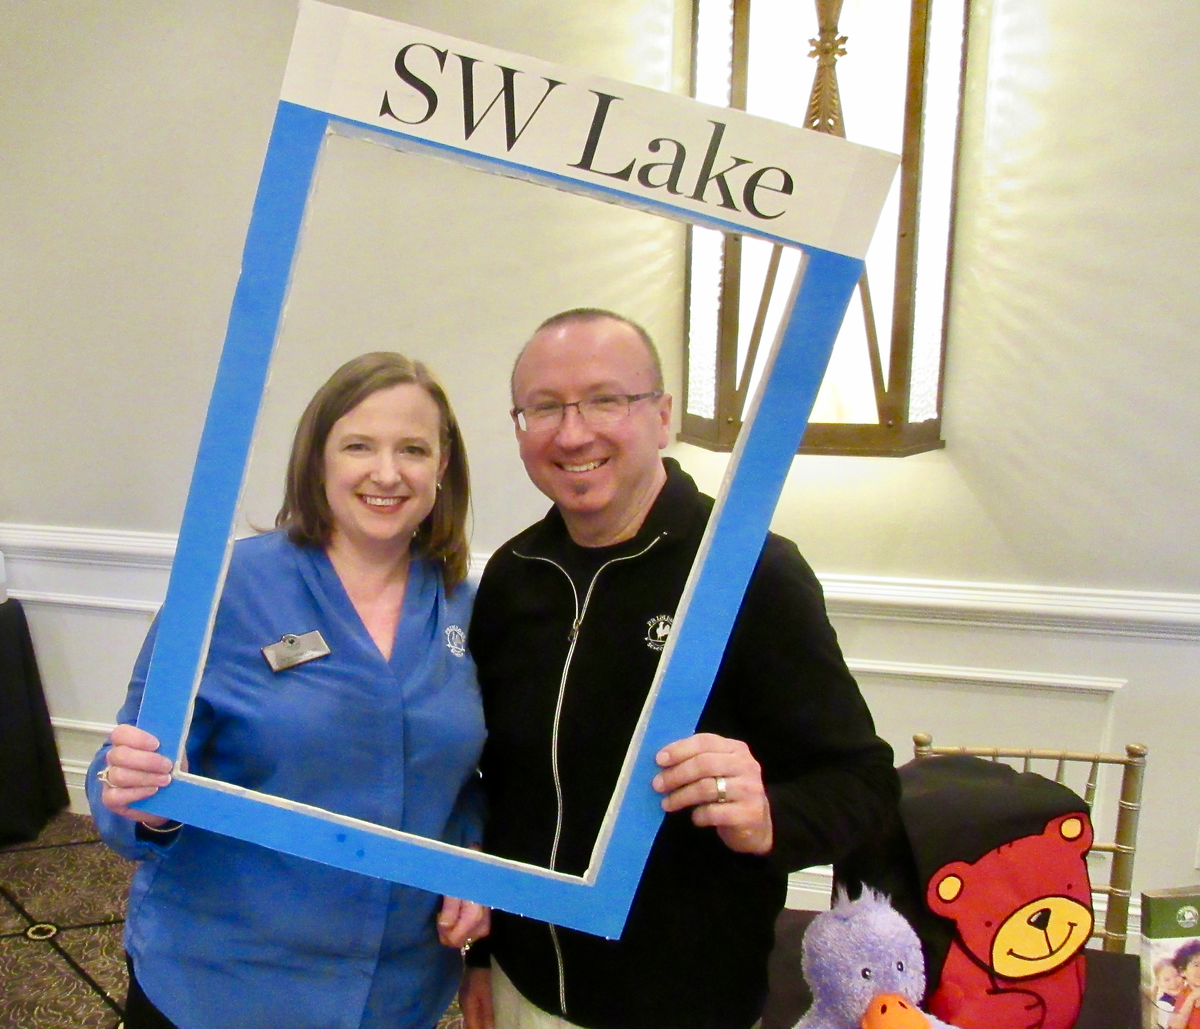 Everything Was at the Lake Zurich Expo – SW Lake Lifestyle